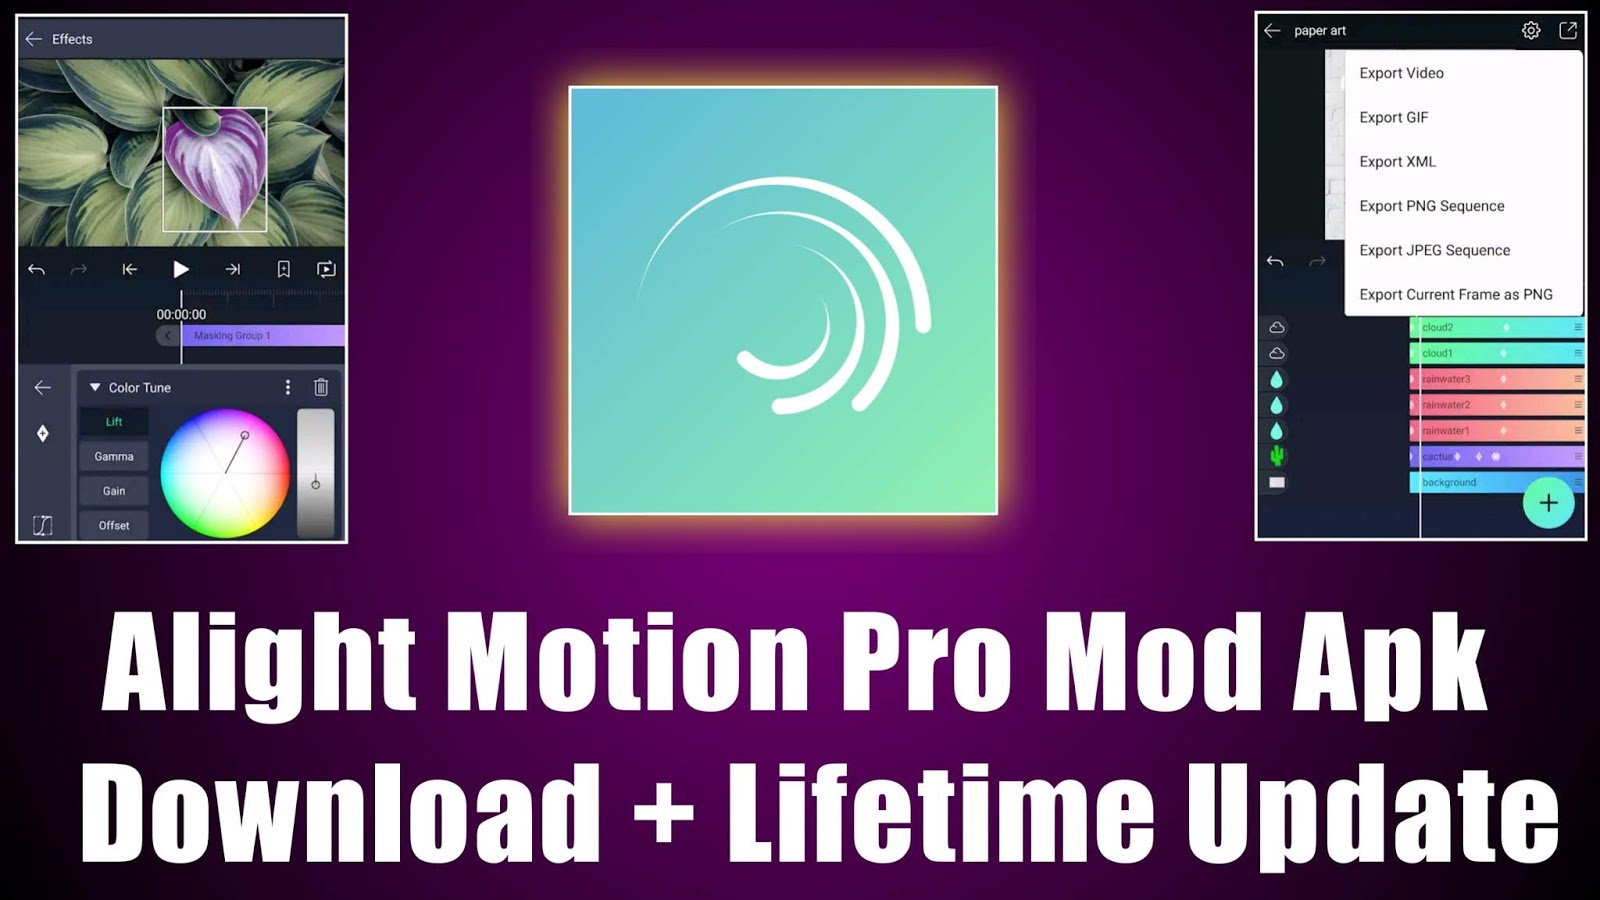 Download alight motion pro apk 3.1.4 Apk4all Semua Versi